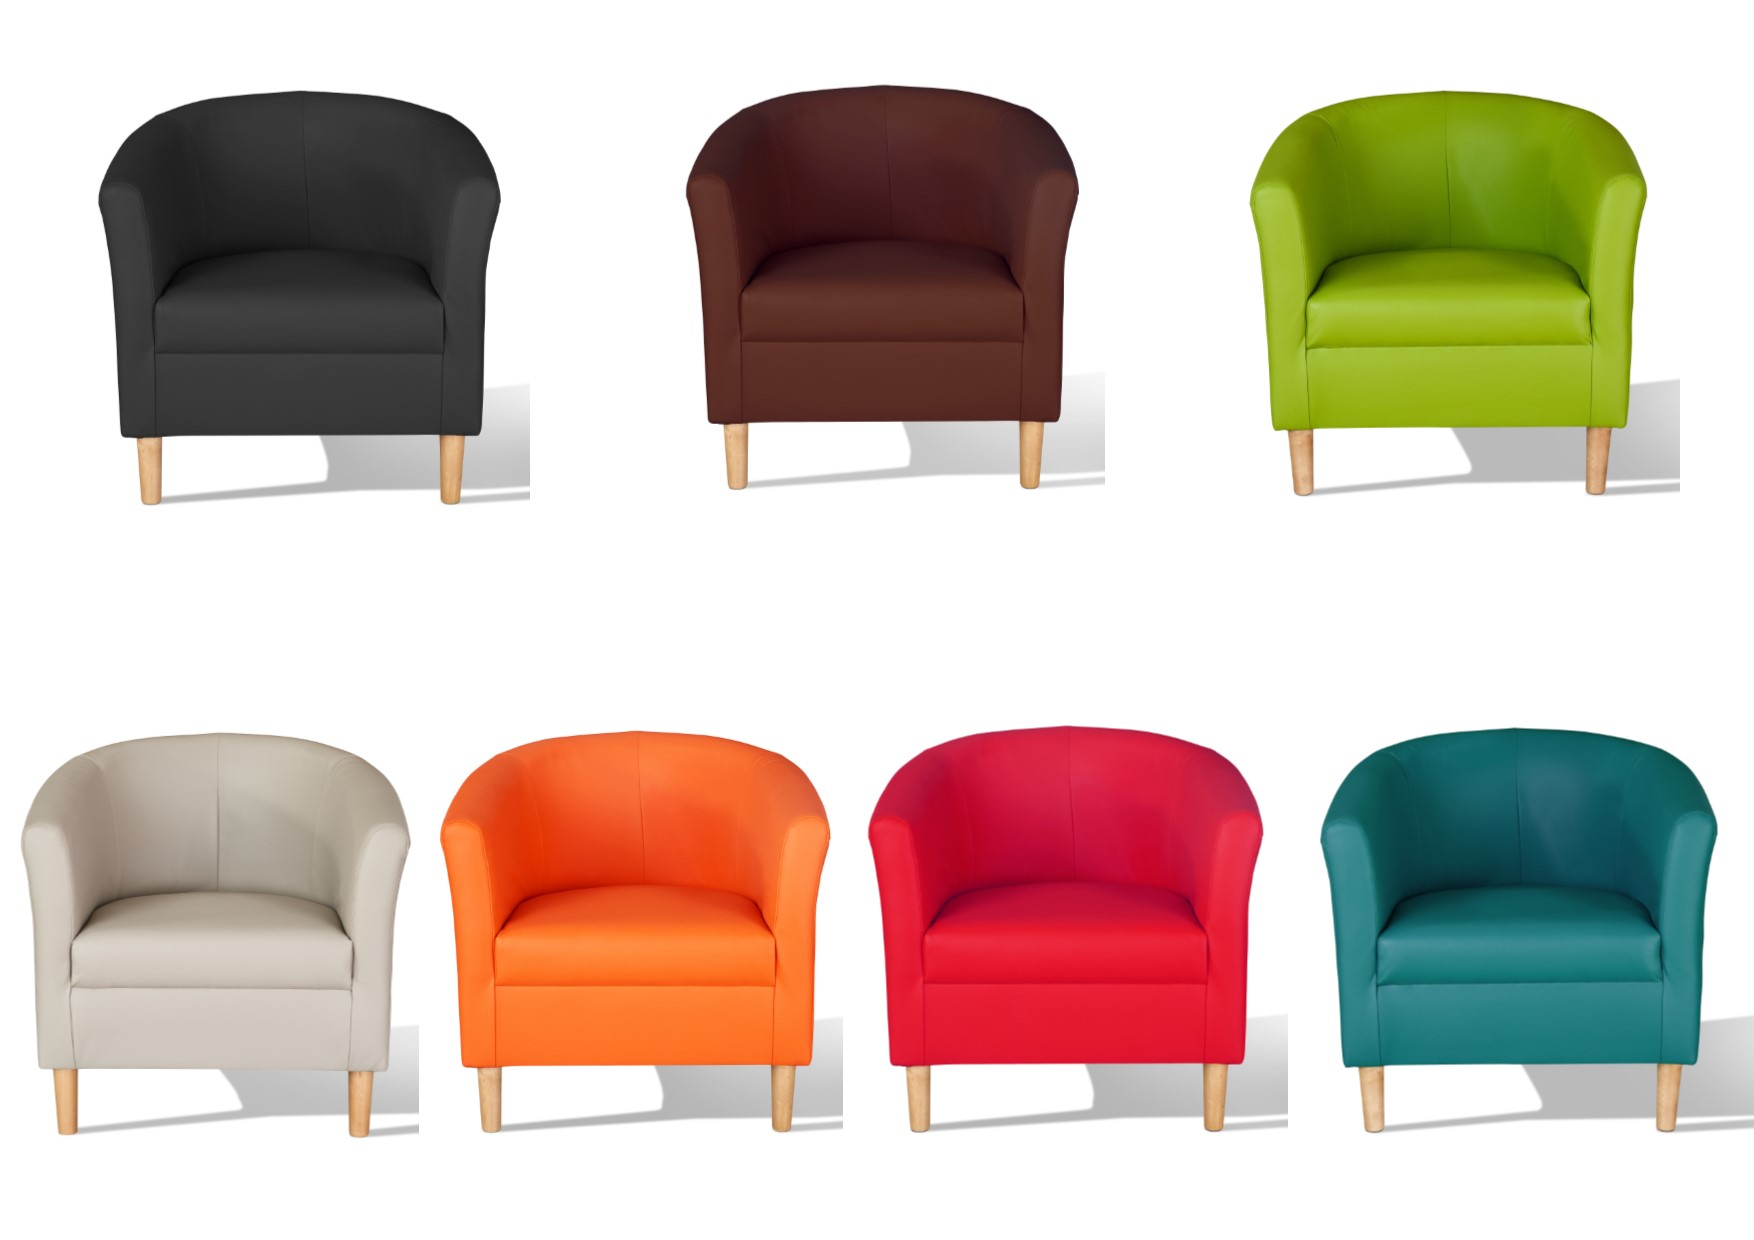 Details About Hamony Faux Leather Tub Chairs – Black, Mocha, Chestnut, Red,  Teal, Green Intended For Montenegro Faux Leather Club Chairs (View 6 of 15)